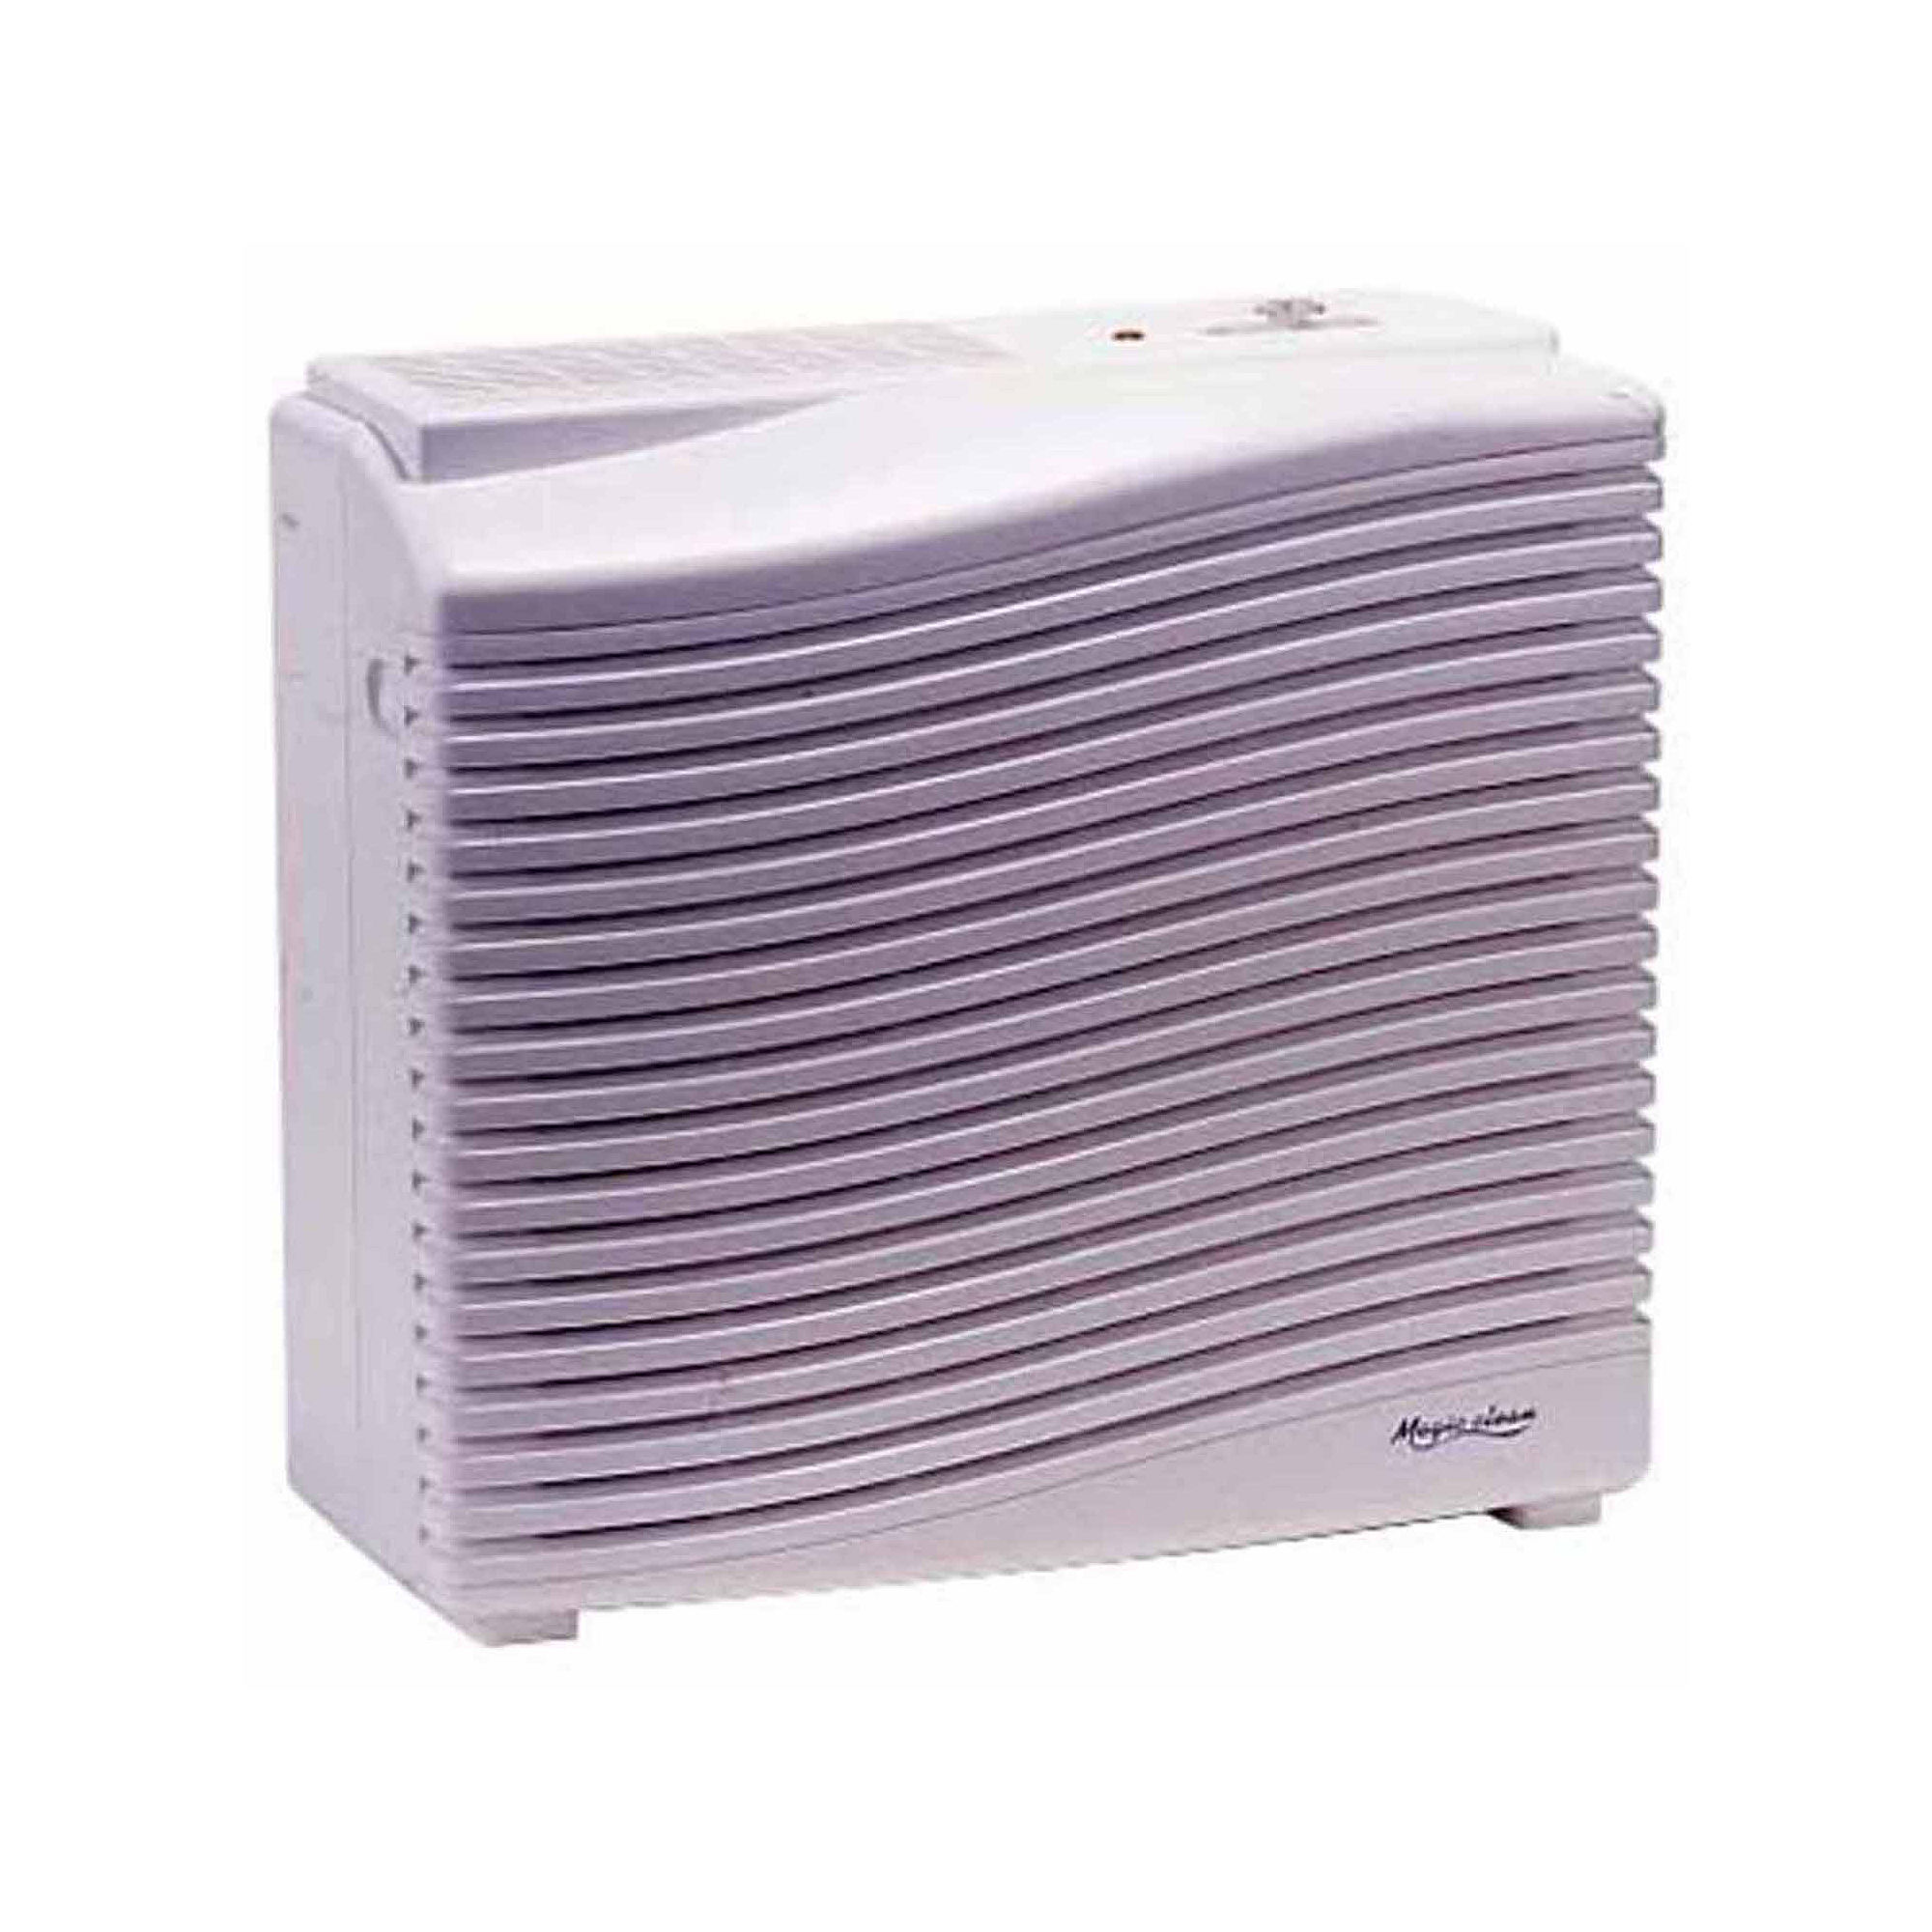 SPT AC-3000i: Magic Clean HEPA Air Cleaner with Ionizer